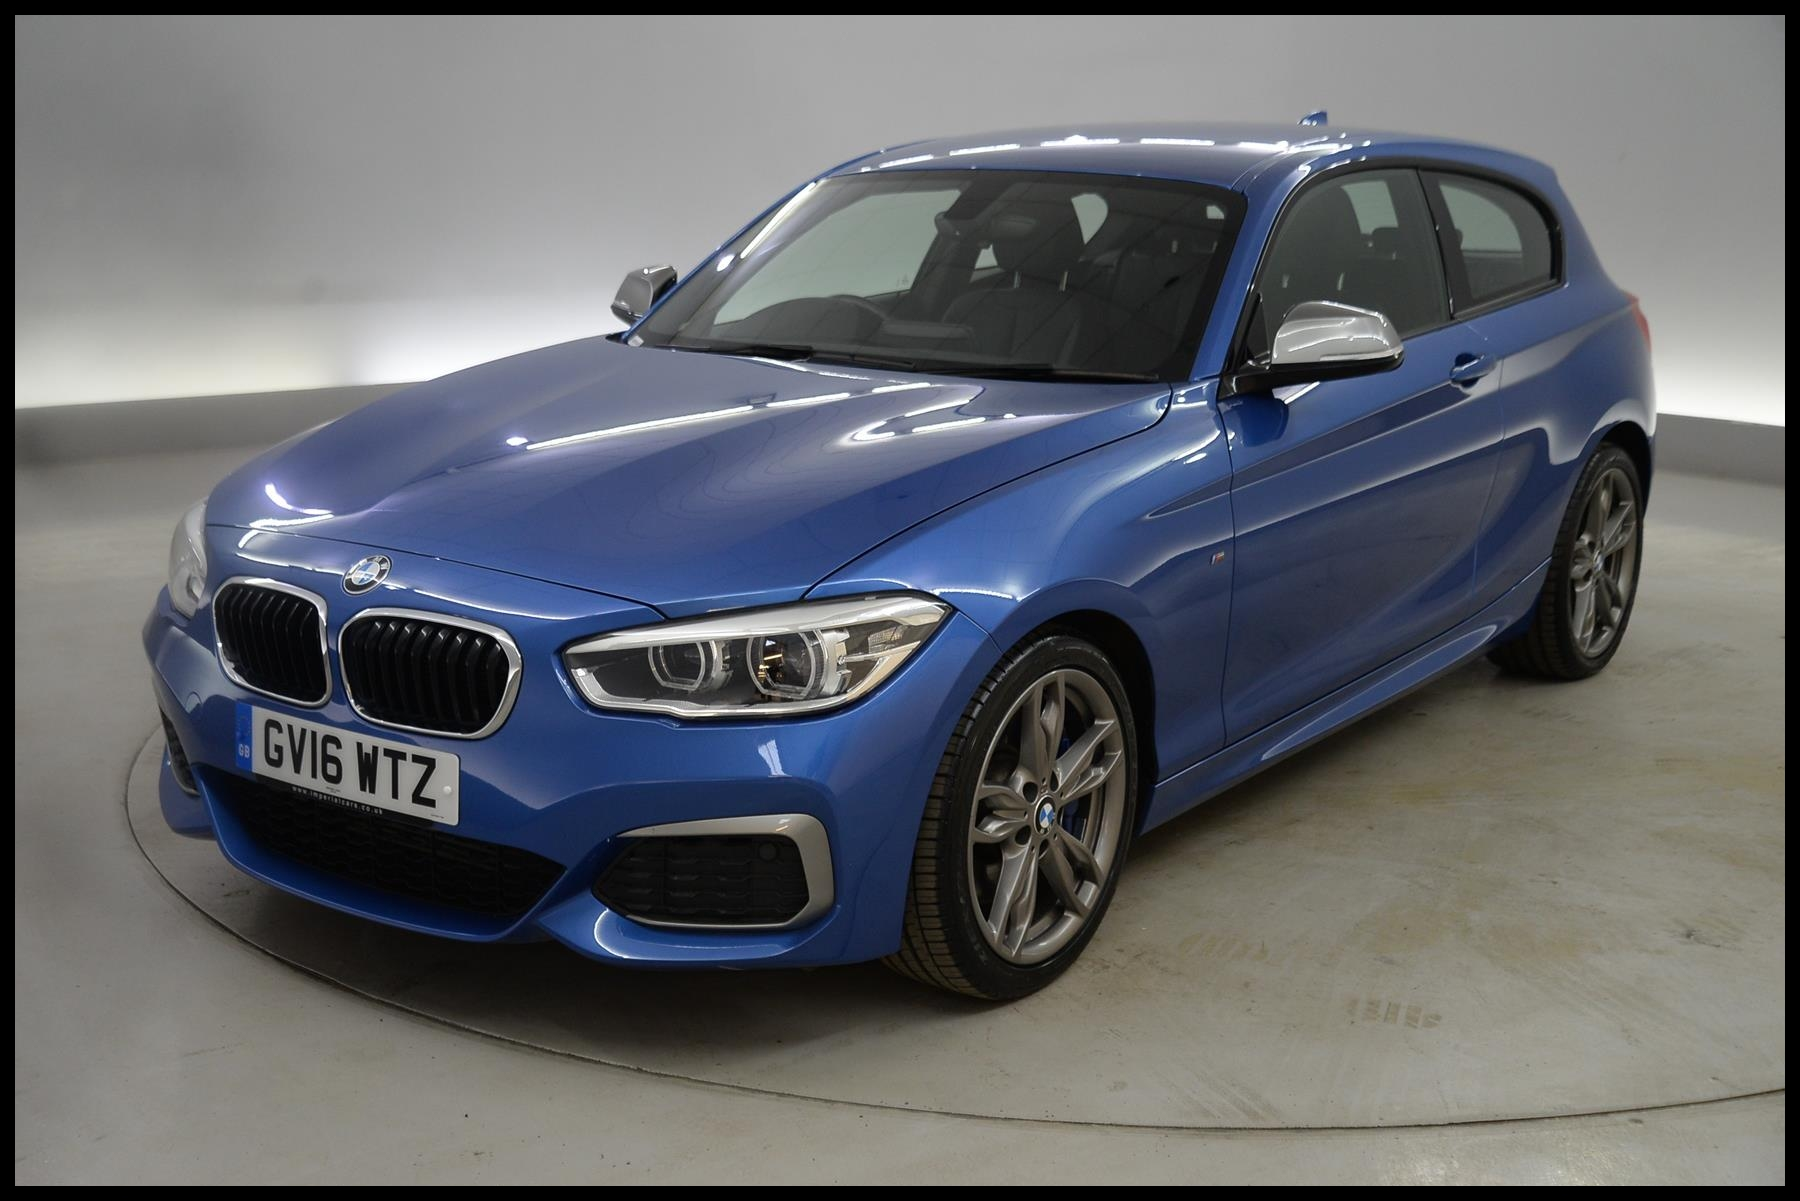 Used 2016 BMW 1 Series M135i 3dr PARKING SENSORS CRUISE CONTROL NAV for sale in Hampshire